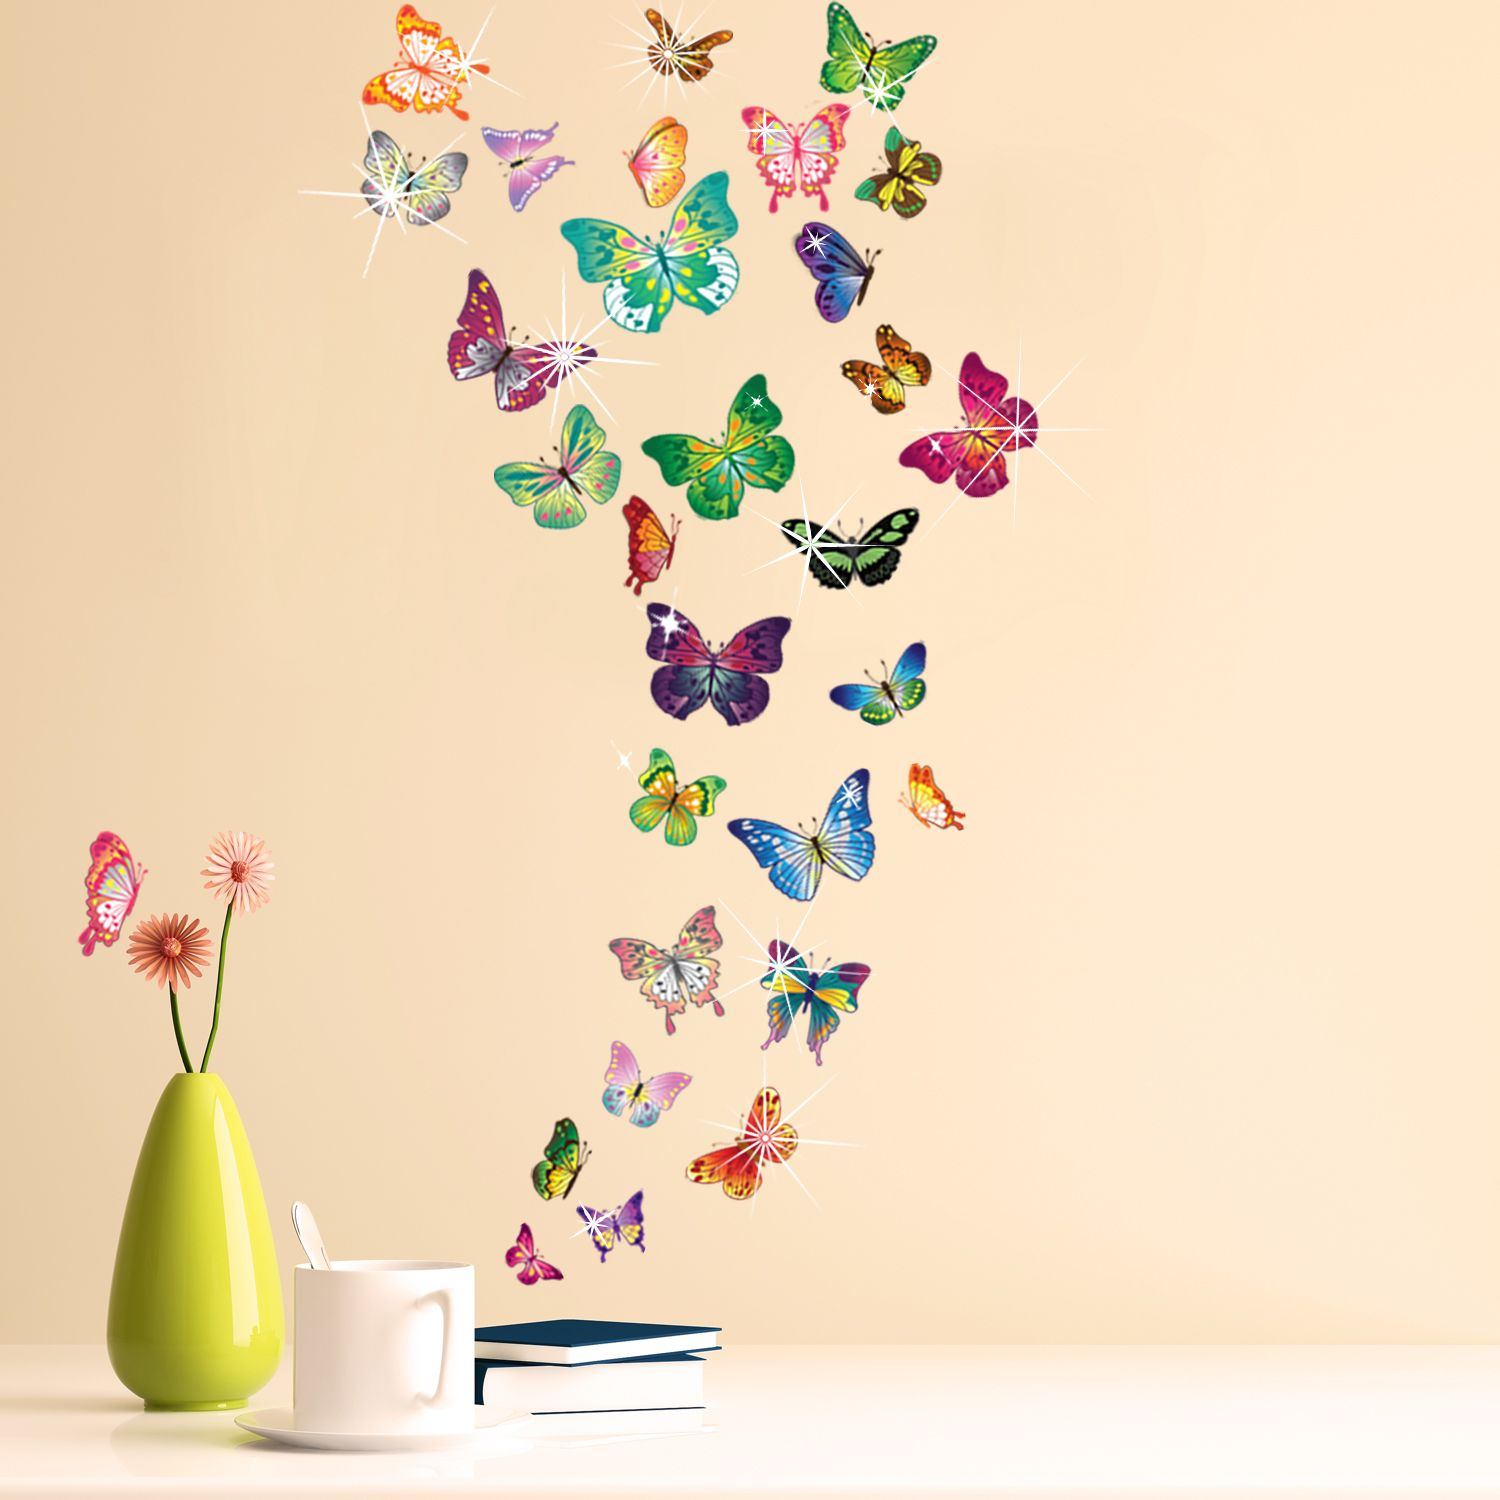 Wall Sticker Decal Butterflies with Swarovski Crystals